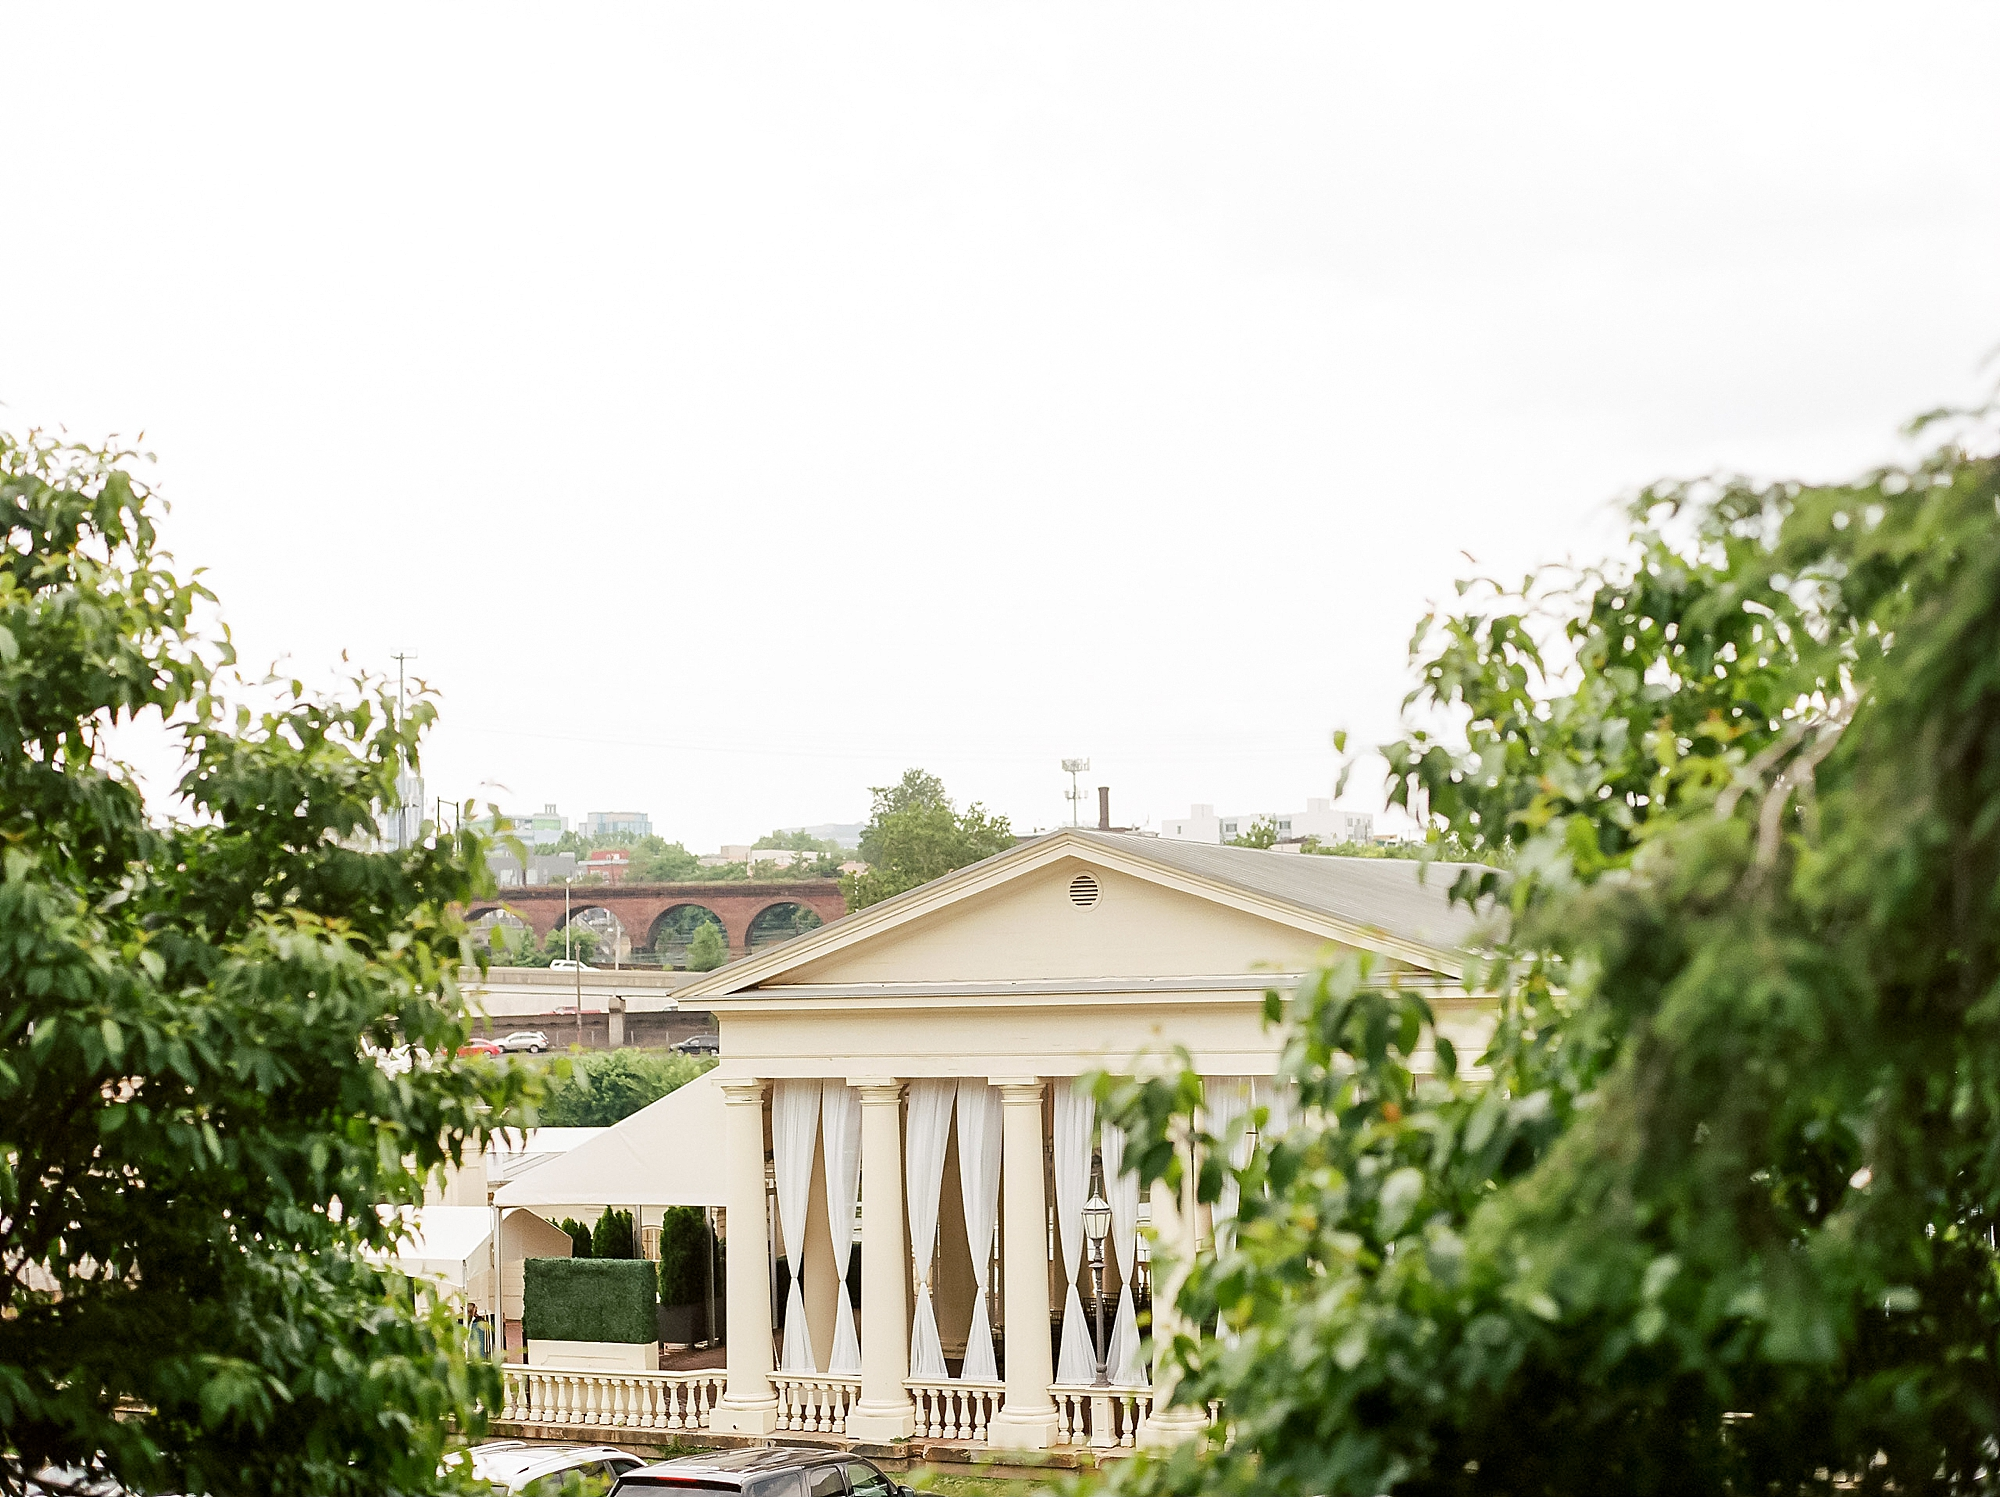 Candid and Genuine Fairmount Waterworks Philadelphia Wedding Photography by Magdalena Studios 0061 1